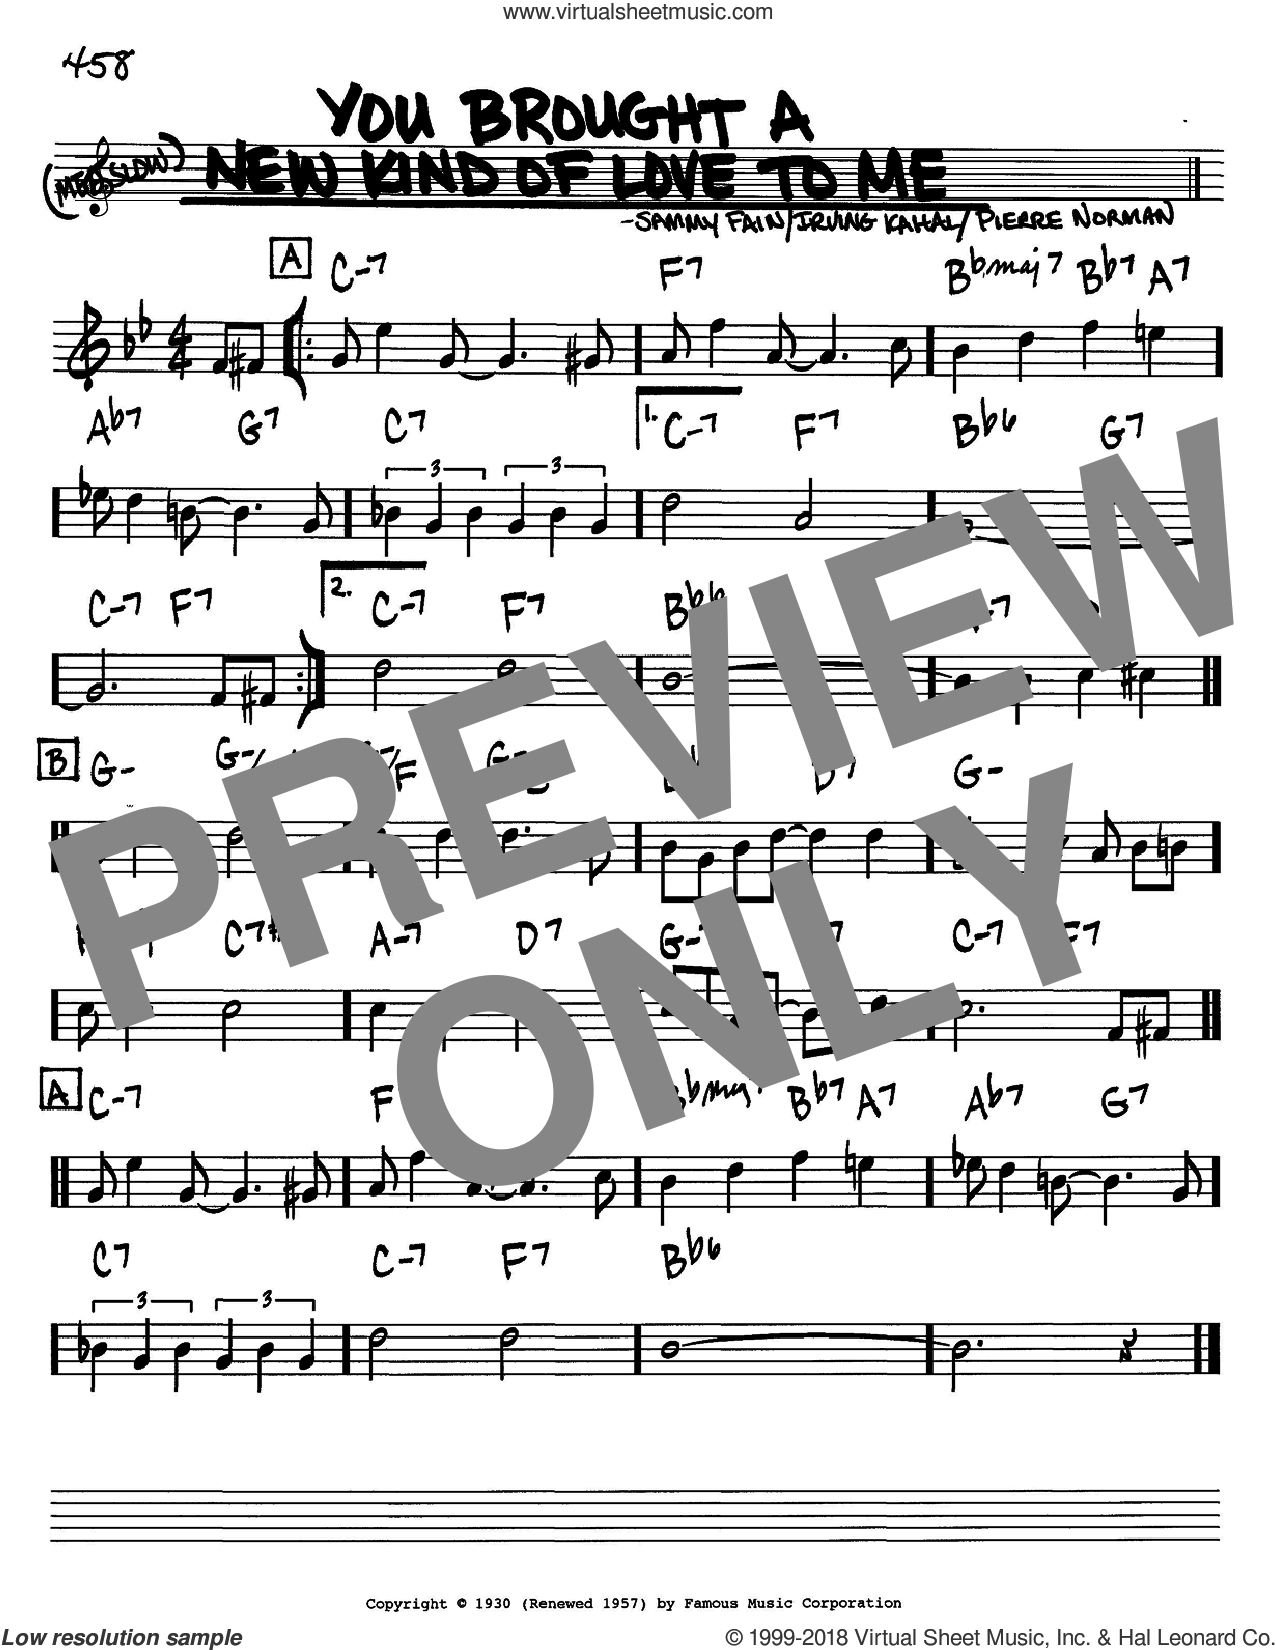 You Brought A New Kind Of Love To Me sheet music for voice and other instruments (Bb) by Sammy Fain, Frank Sinatra, Irving Kahal and Pierre Norman. Score Image Preview.